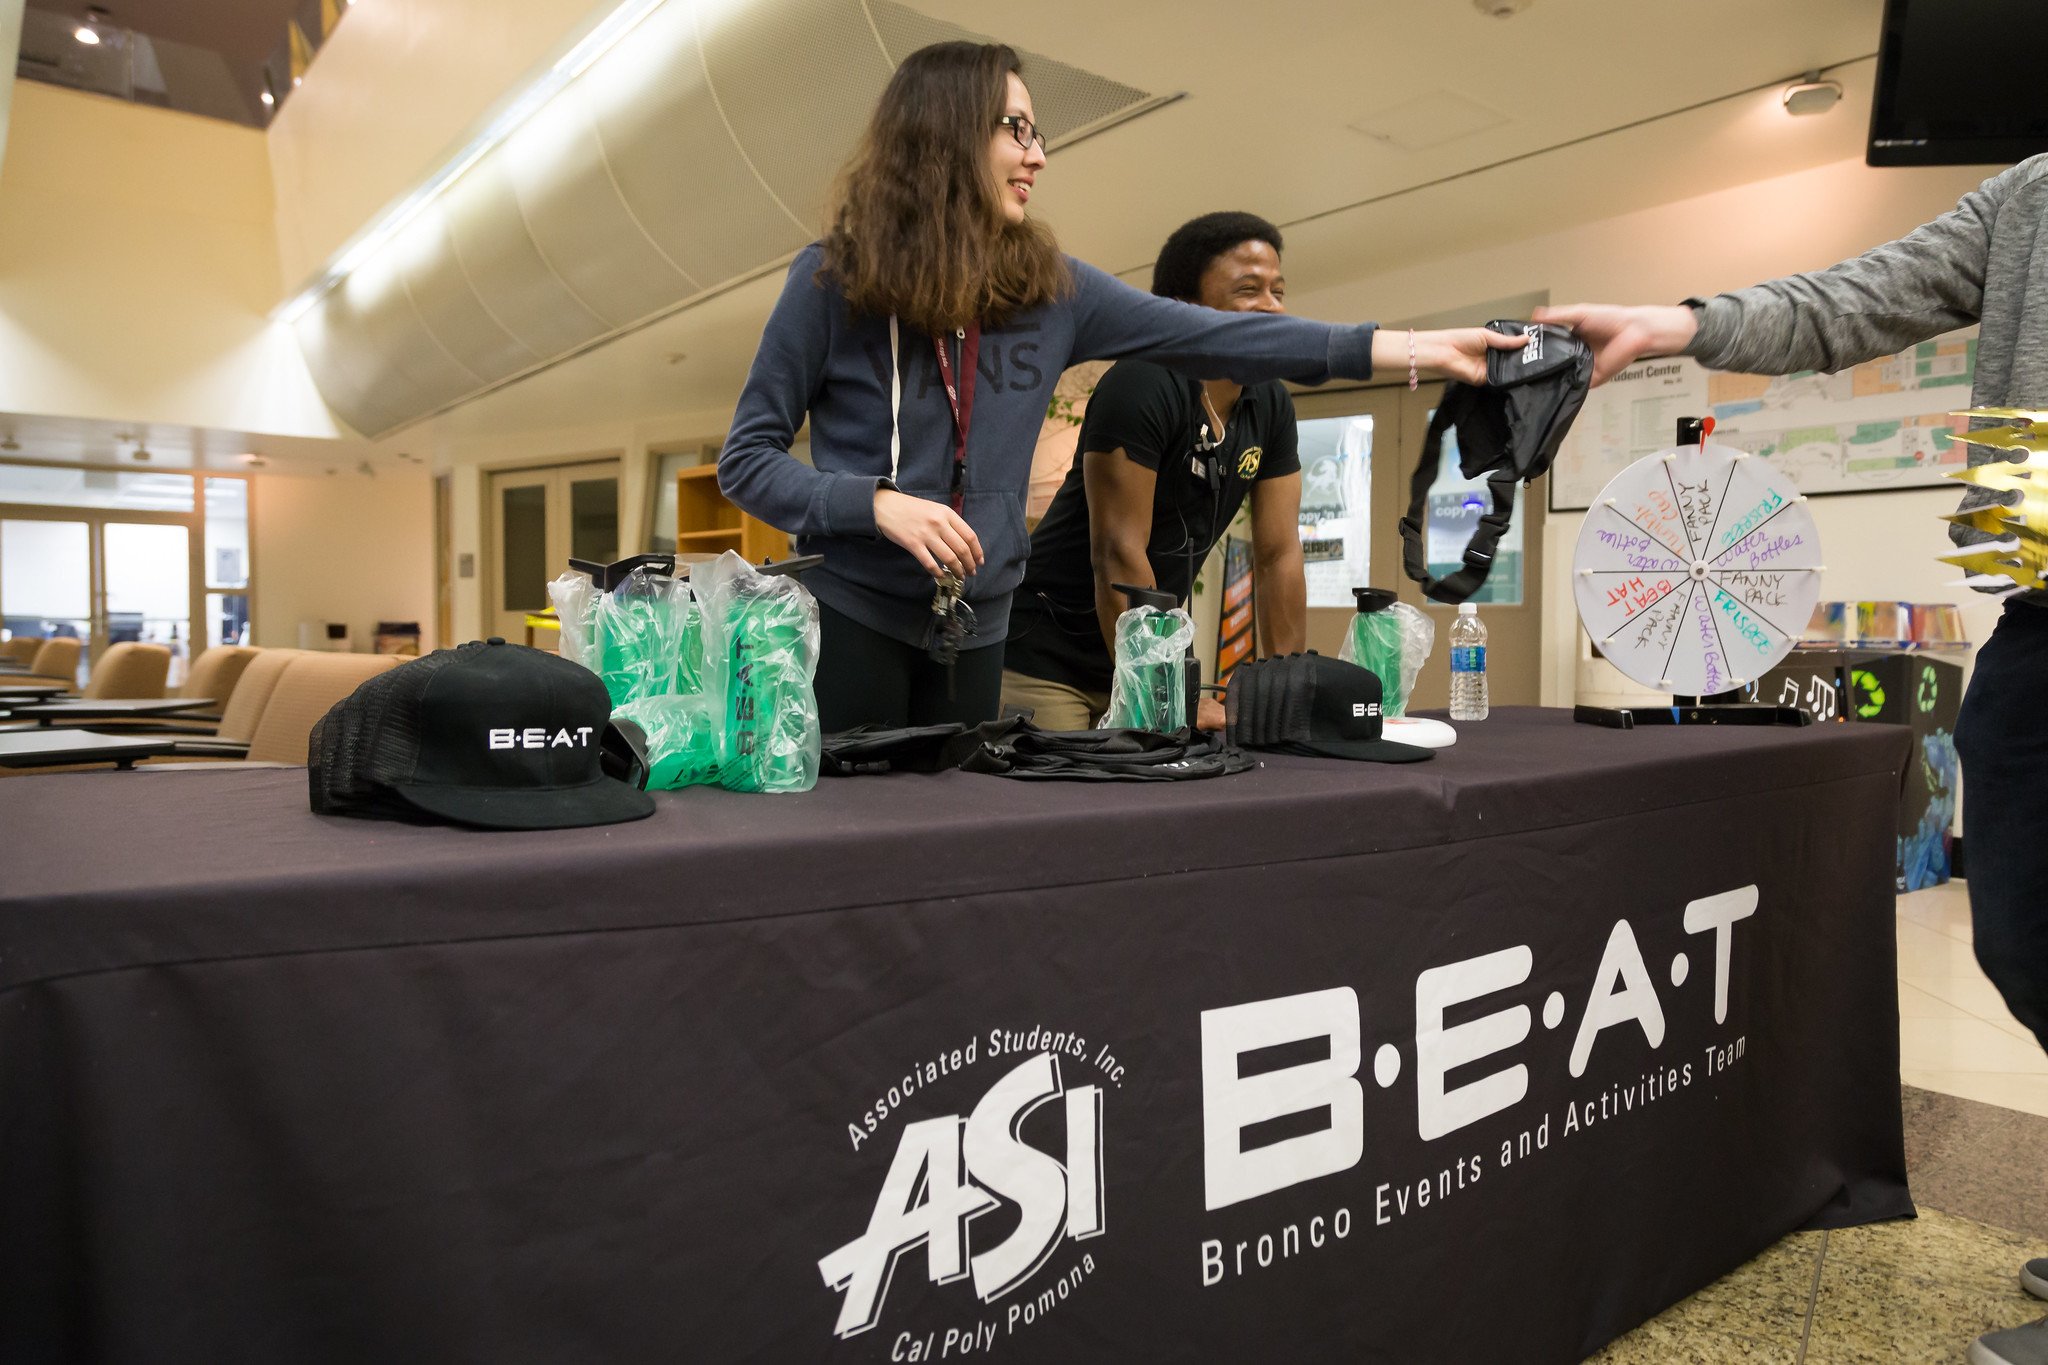 BEAT members hand out swag at an event